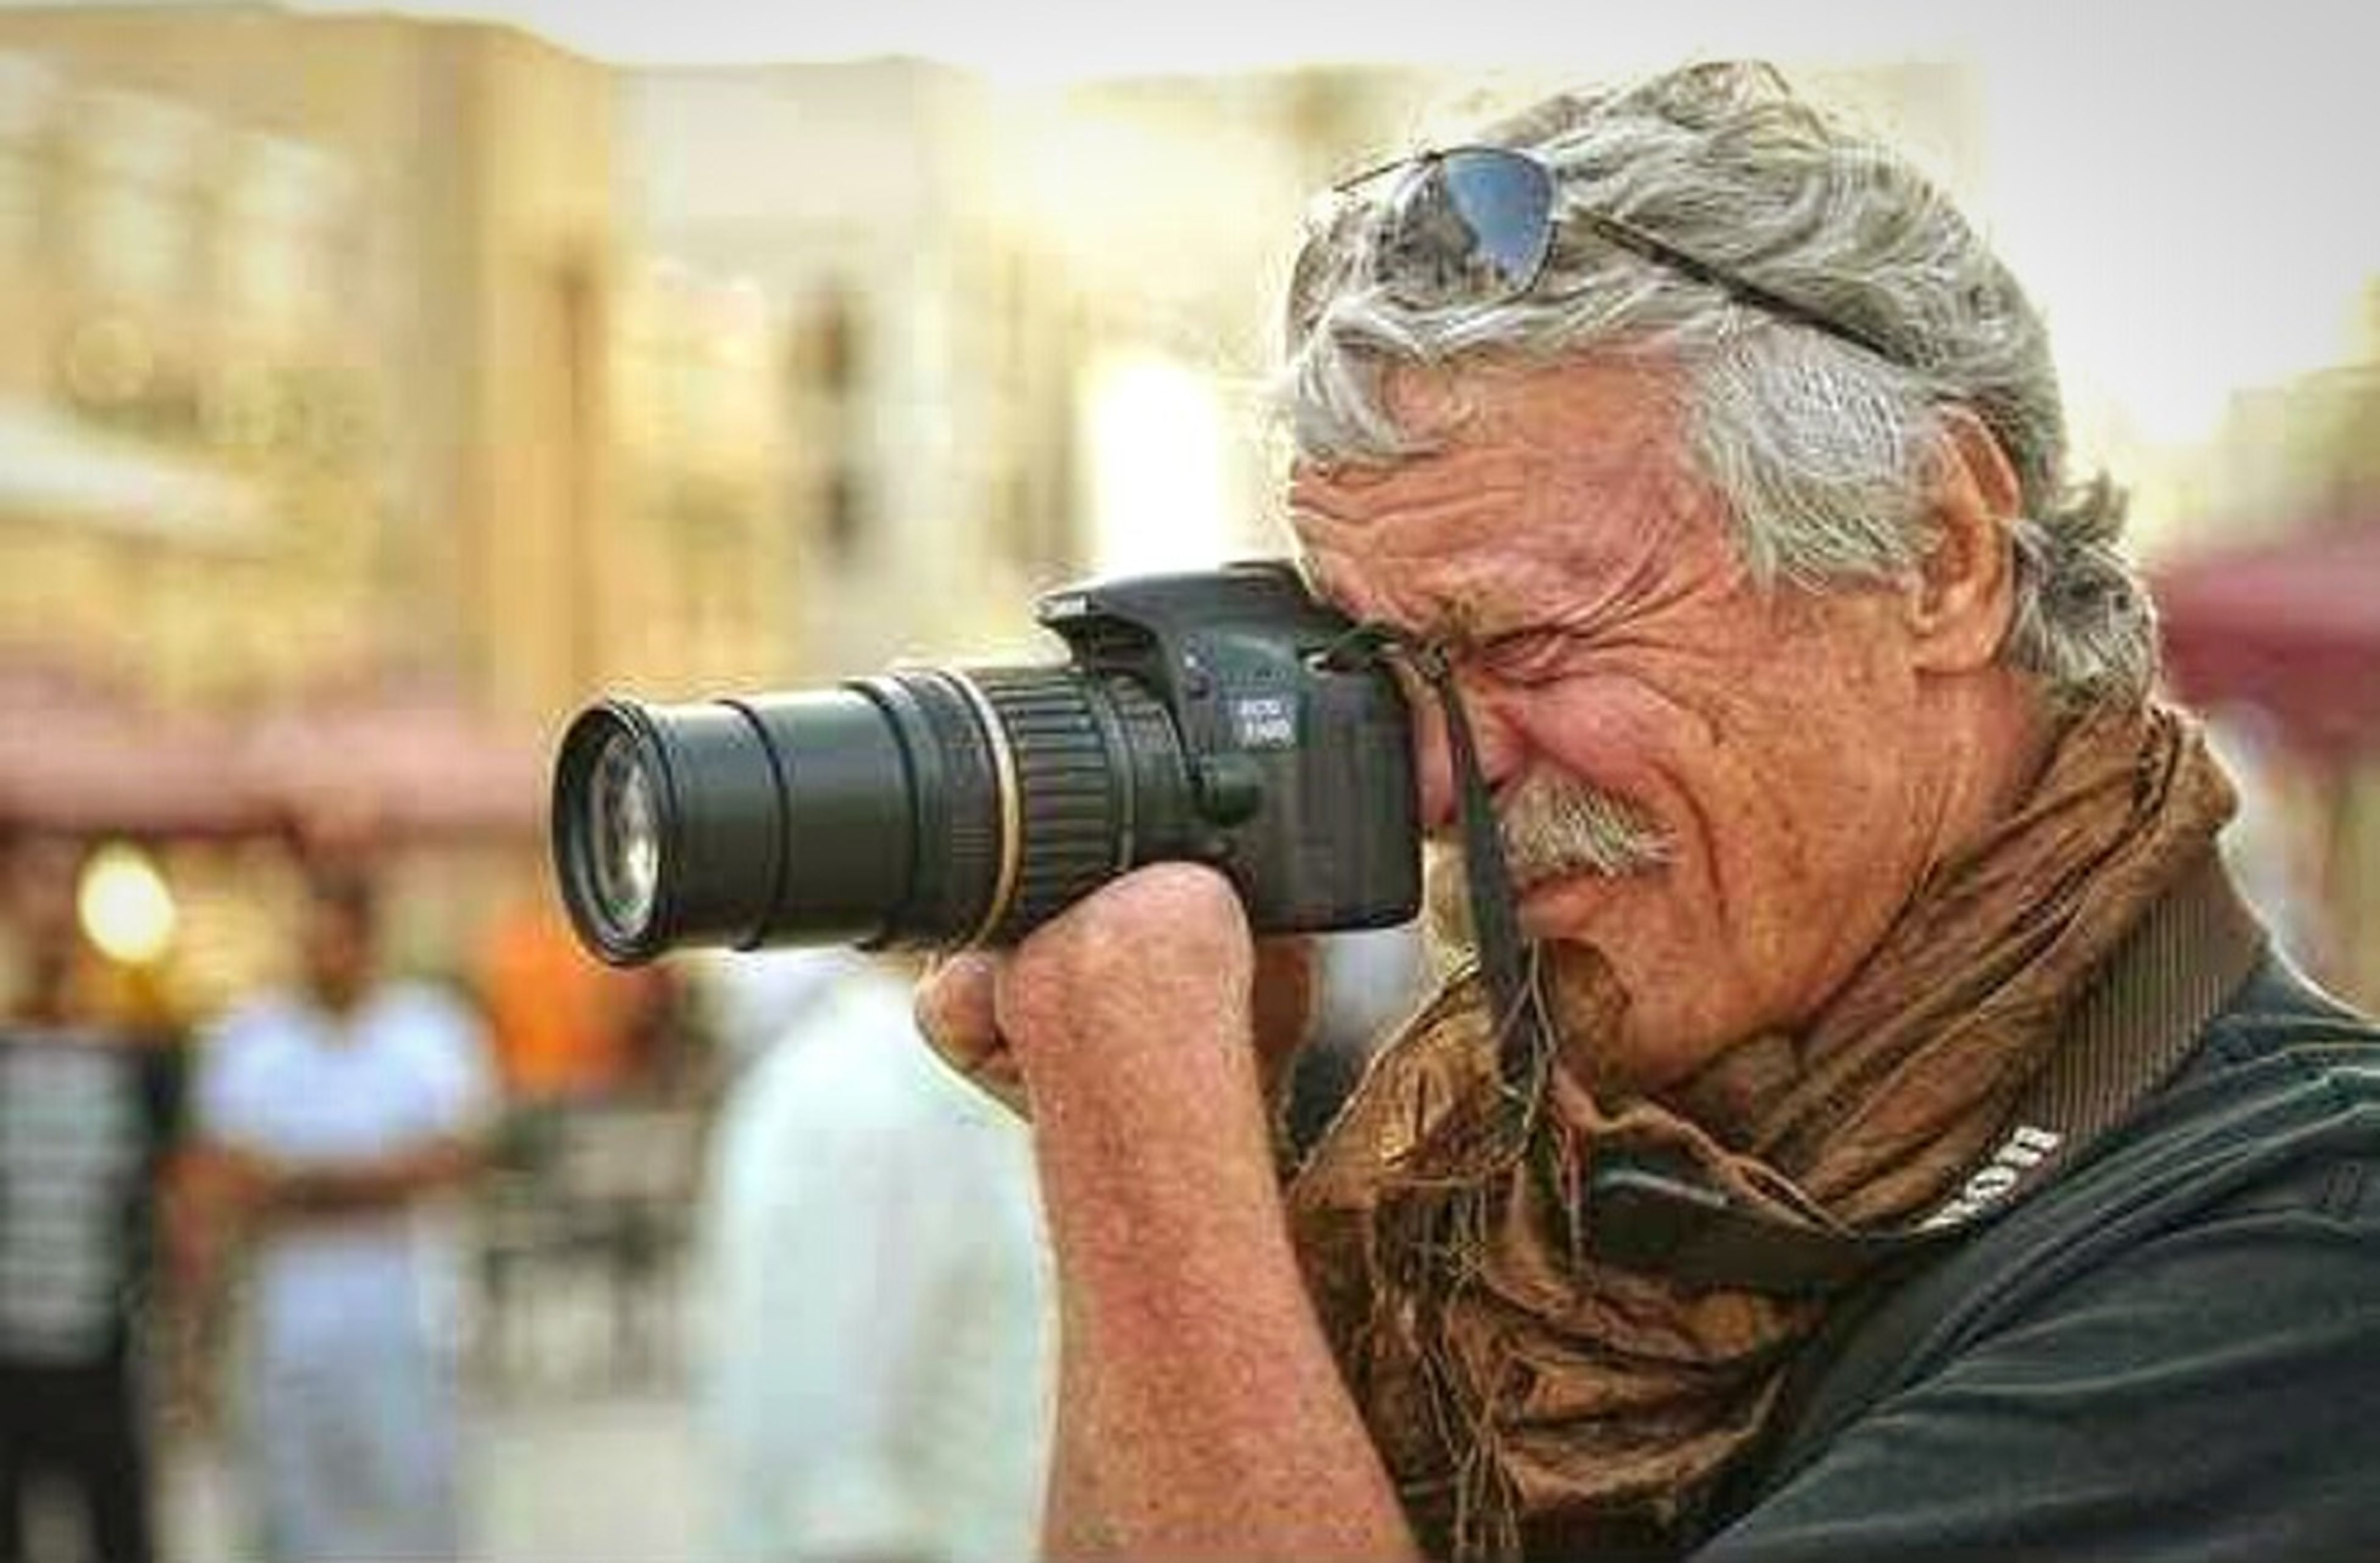 senior adult, camera - photographic equipment, men, photographing, only men, senior men, one man only, adult, one senior man only, adults only, one person, headshot, people, gray hair, day, technology, outdoors, close-up, human body part, photography themes, city